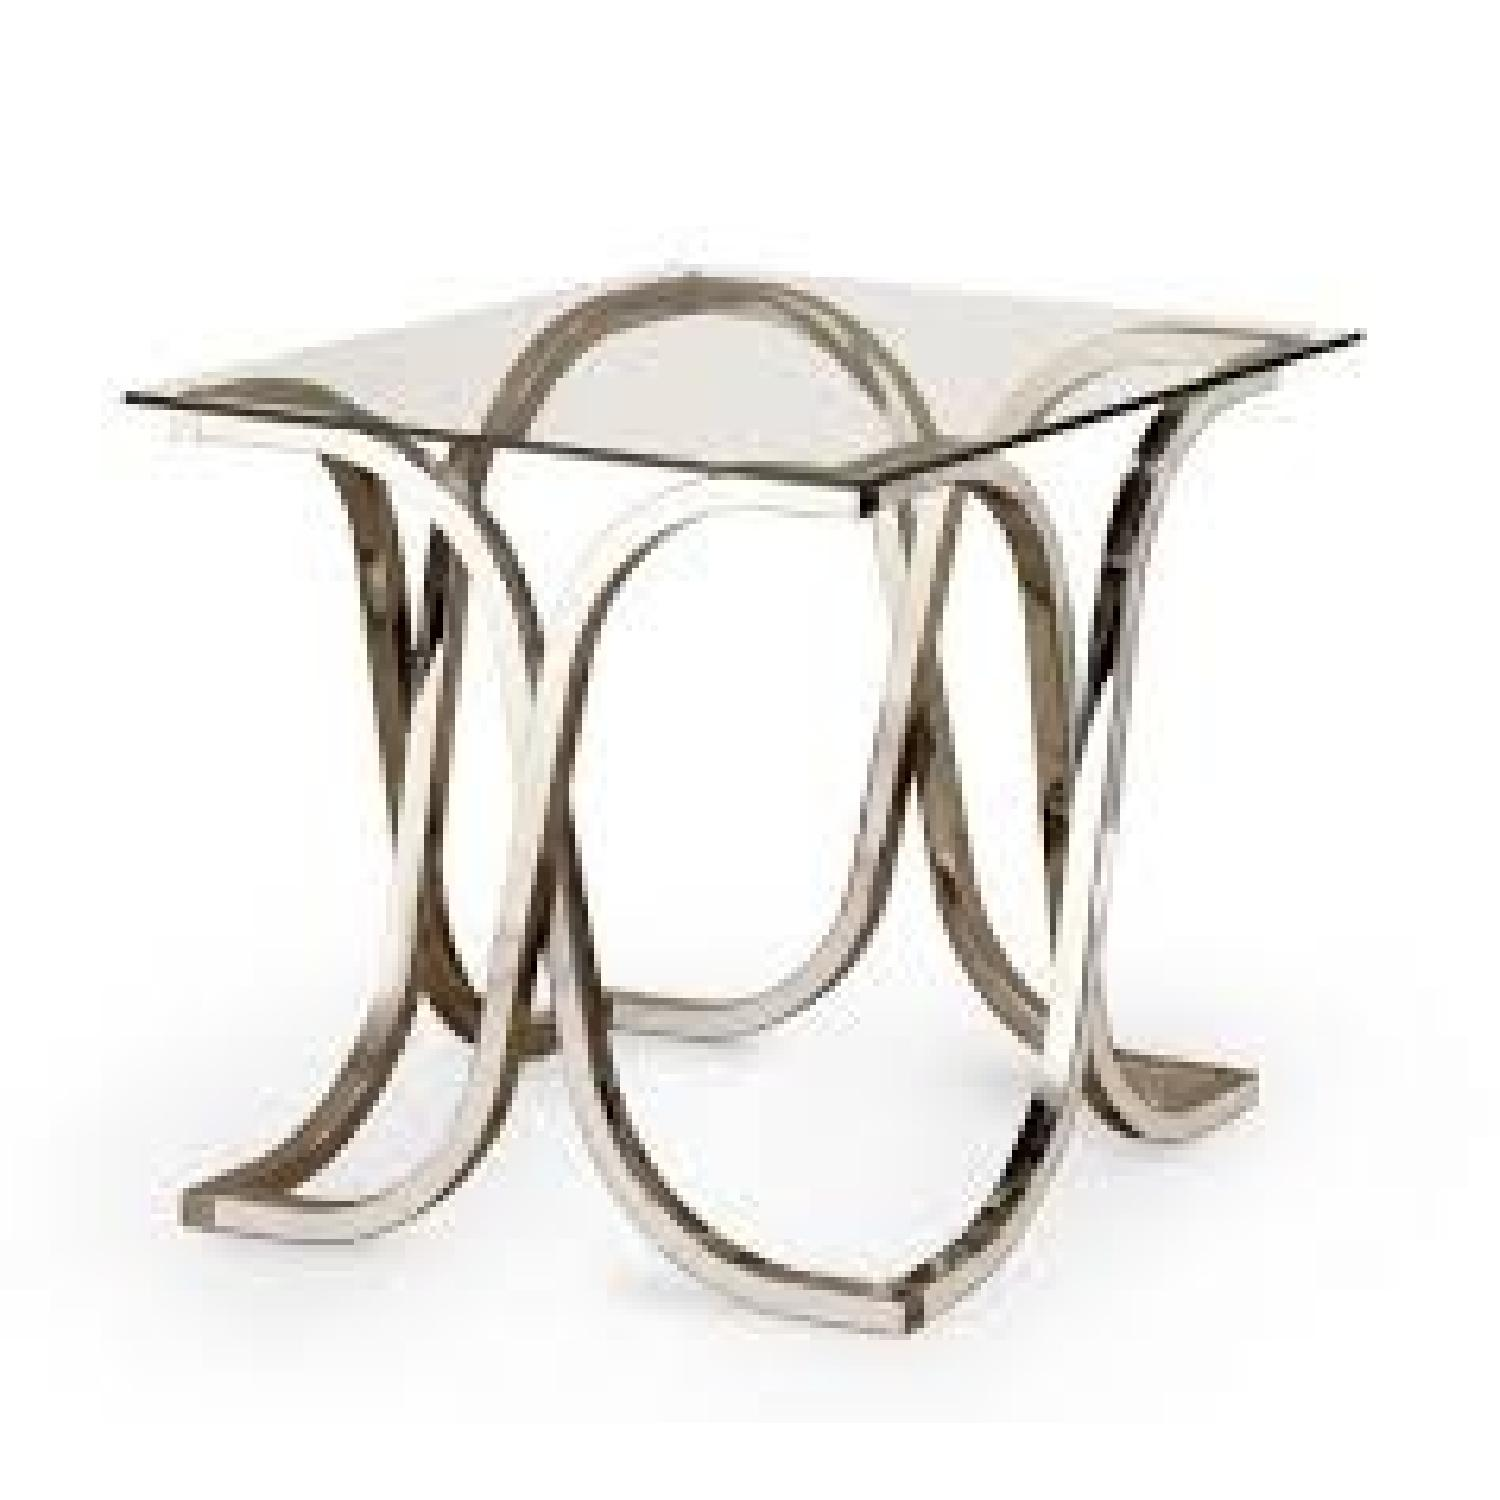 Contemporary Glass End Table in Nickel Finish - image-0